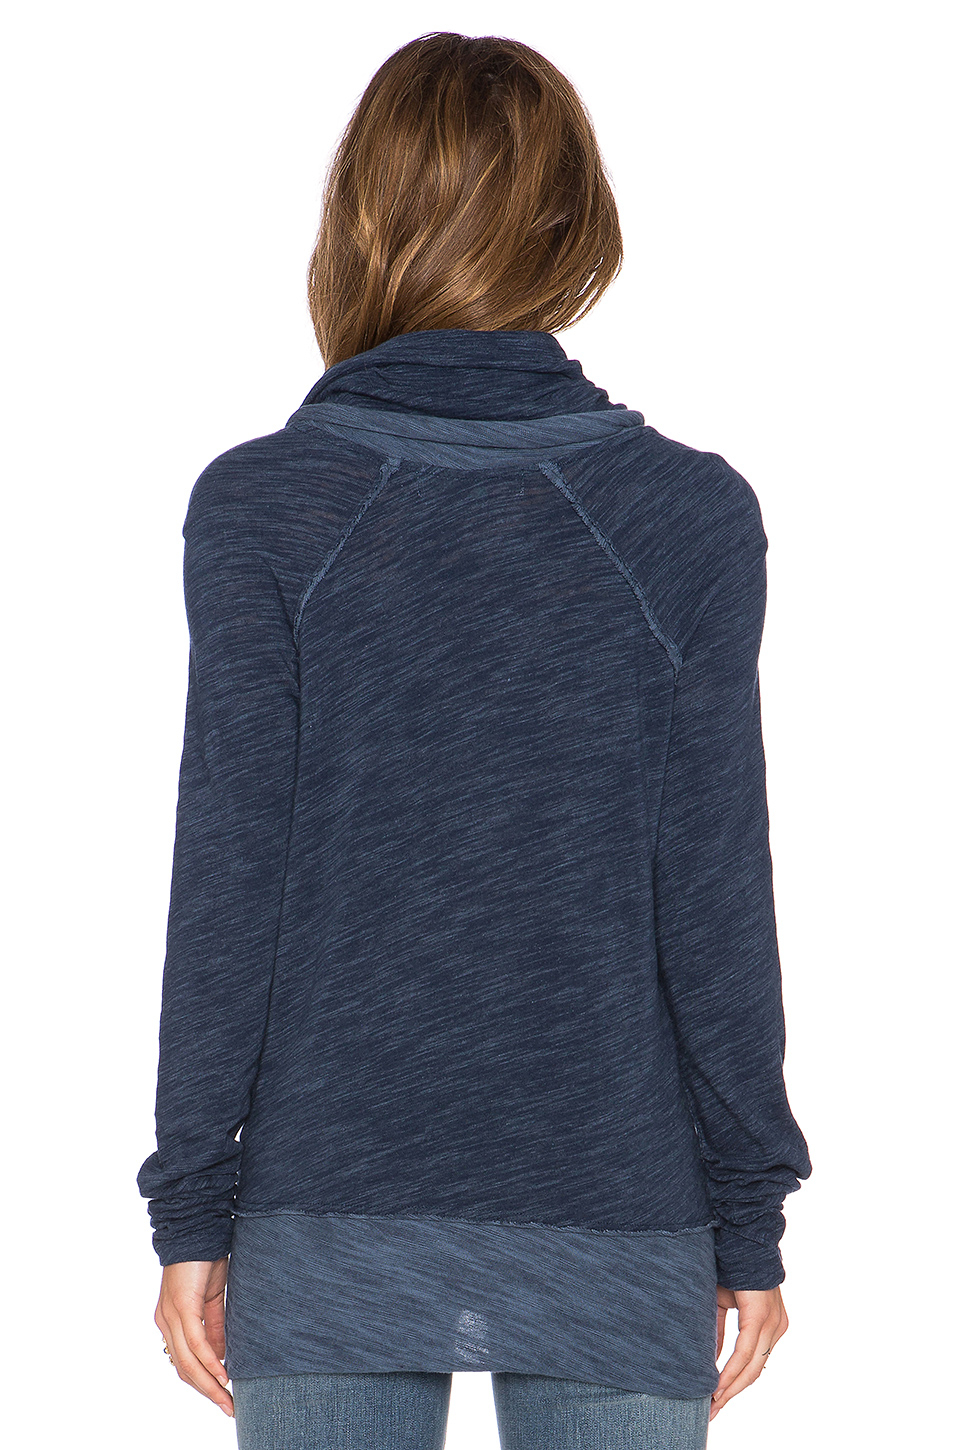 Free people Cocoon Cowl Neck Sweater in Blue | Lyst